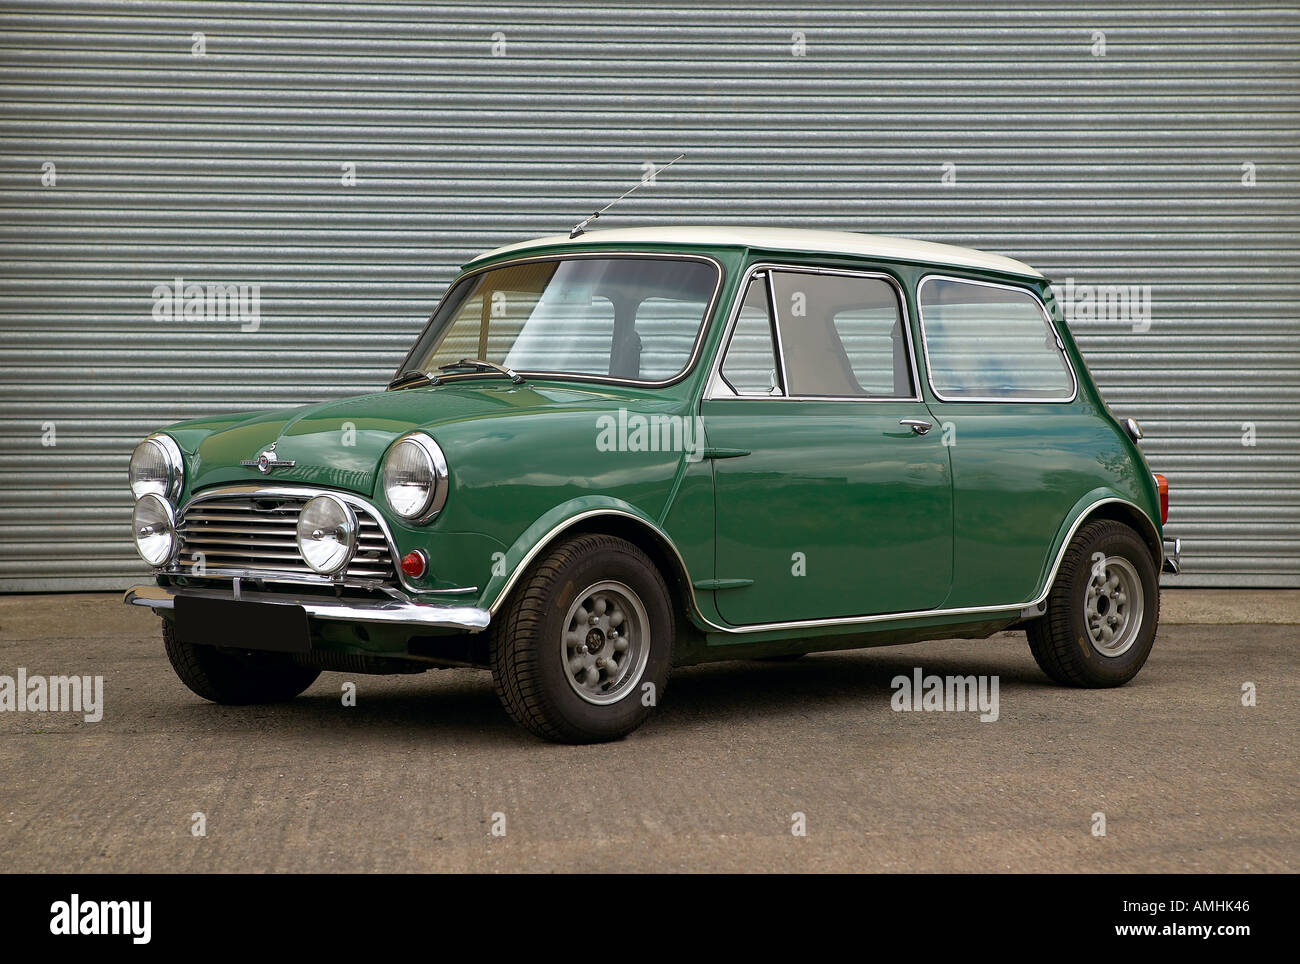 1967 Morris Mini Cooper 1275cc S saloon with minilite wheels foglamps and widened wheelarches Country of origin UK - Stock Image